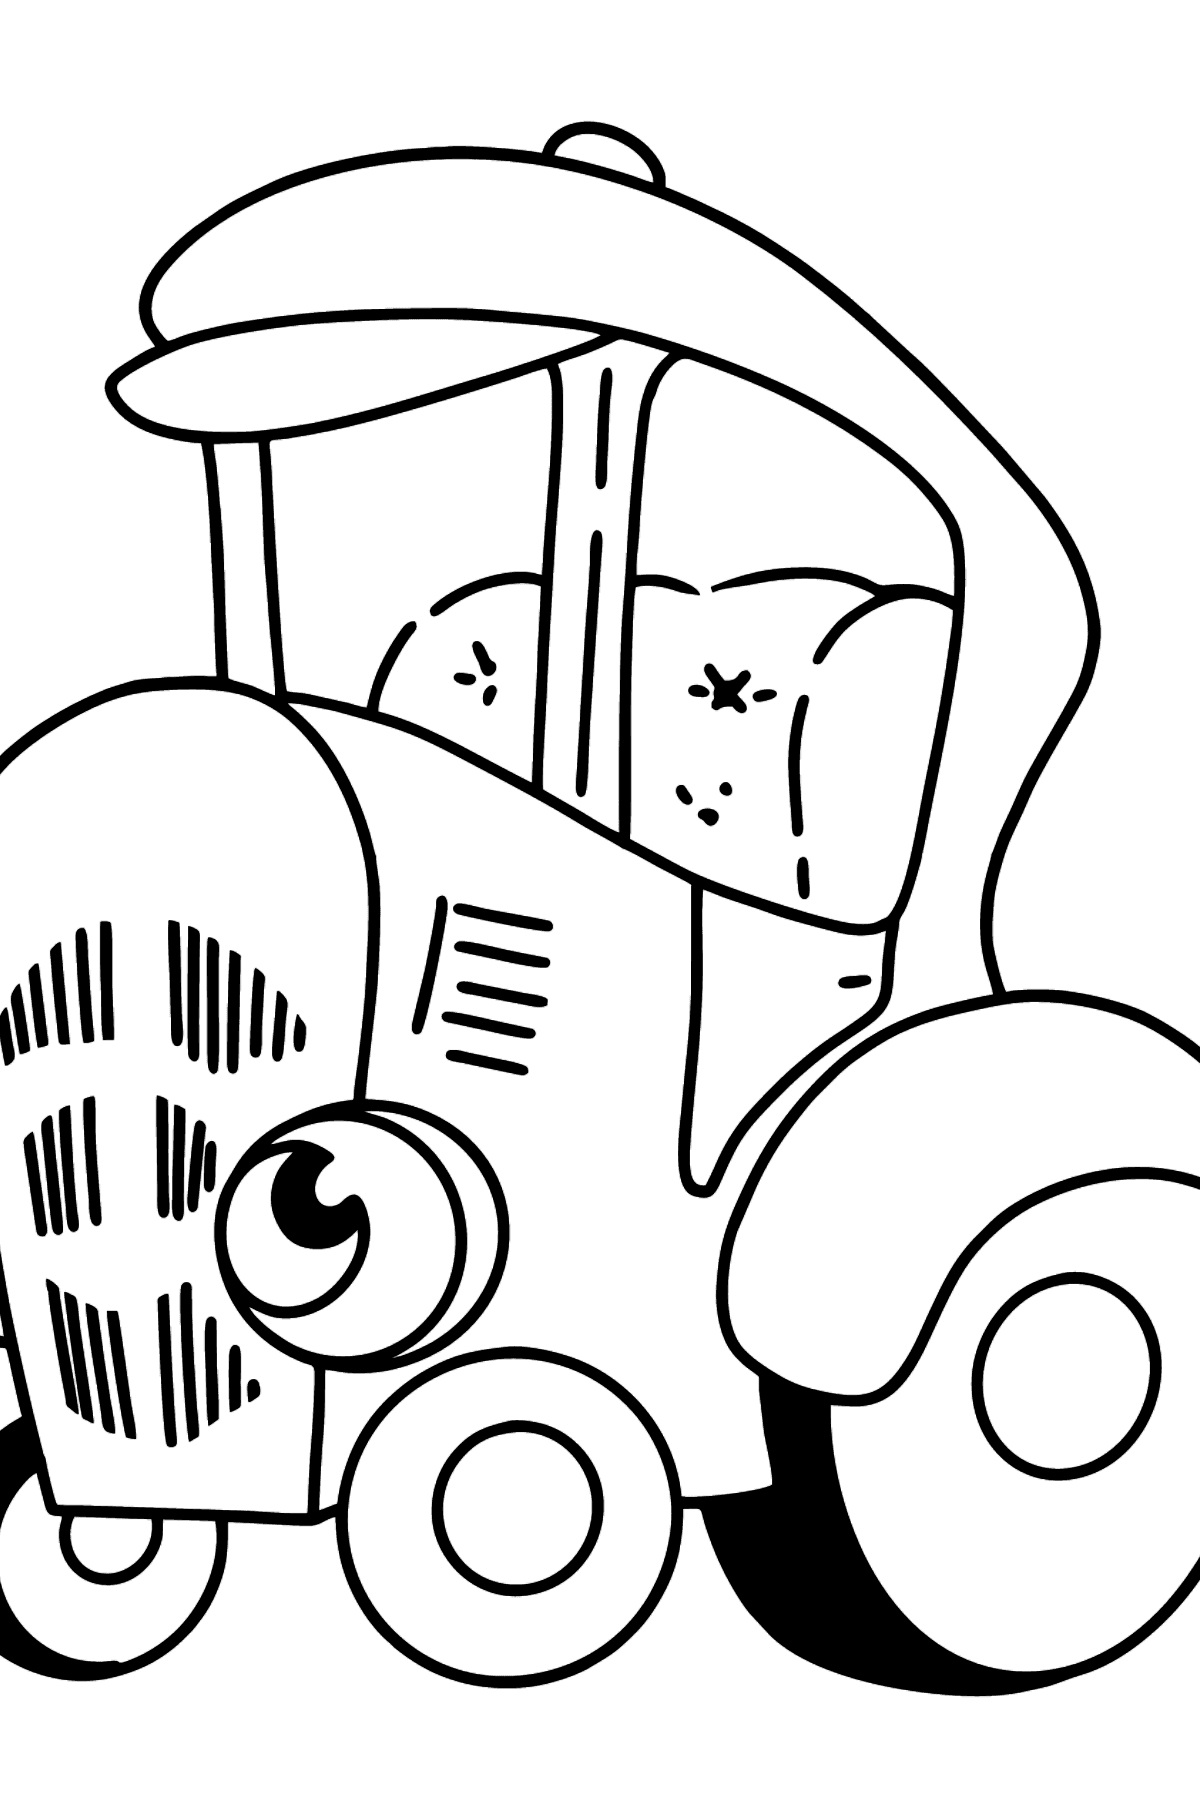 Blue Tractor coloring page - Coloring Pages for Kids